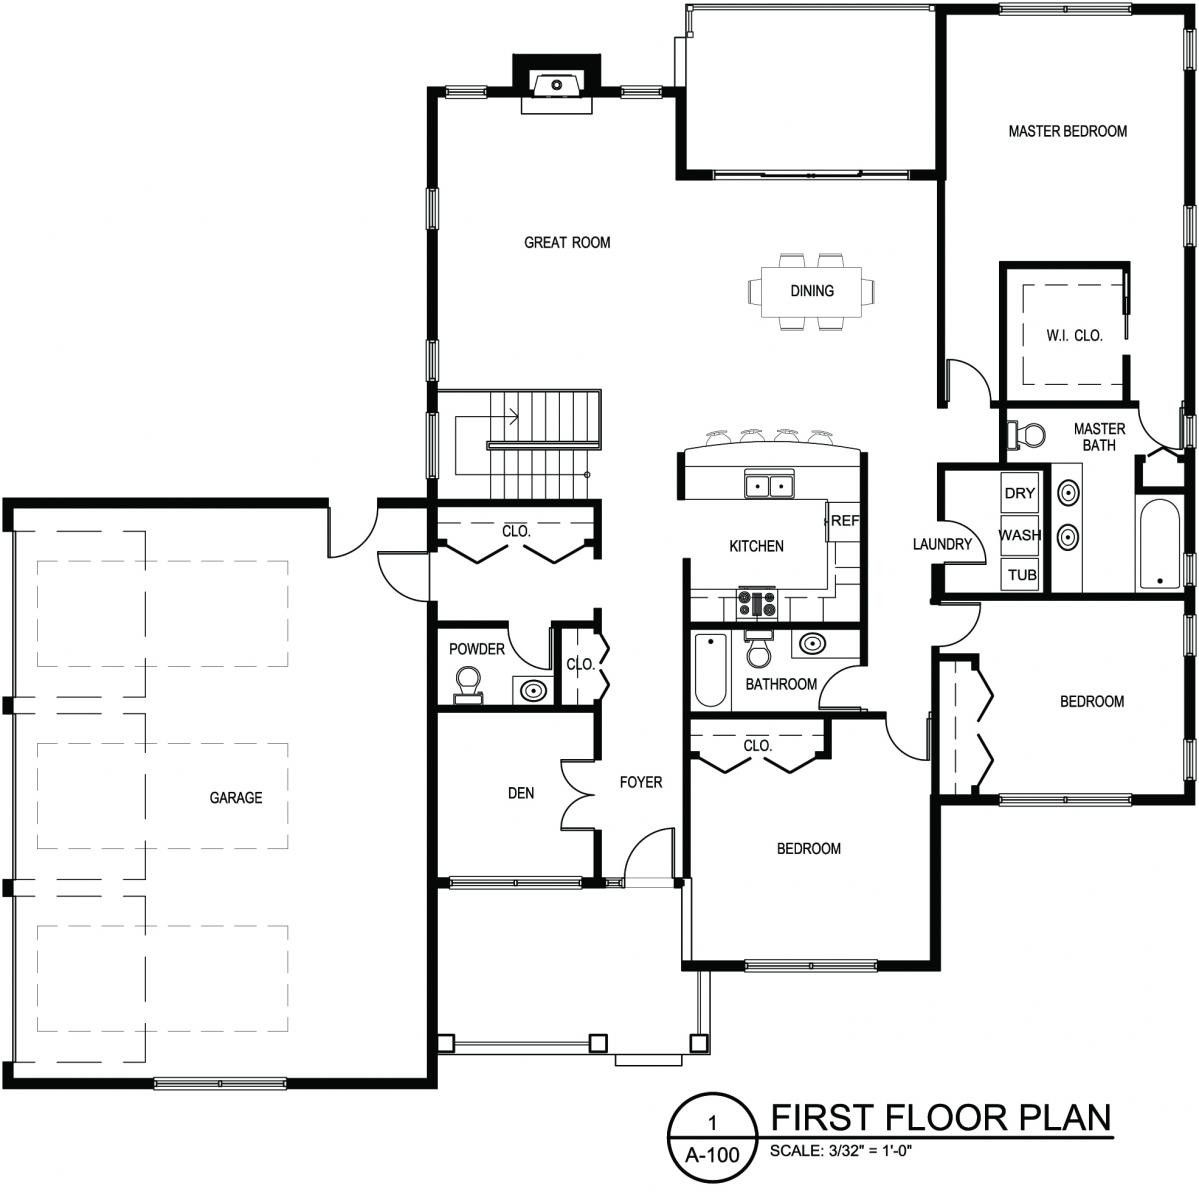 38 Brain Blowing Modern Family House Design Portland That Is Best For Your House Pictures Decoratorist Family House Plans Modern Family House House Plans